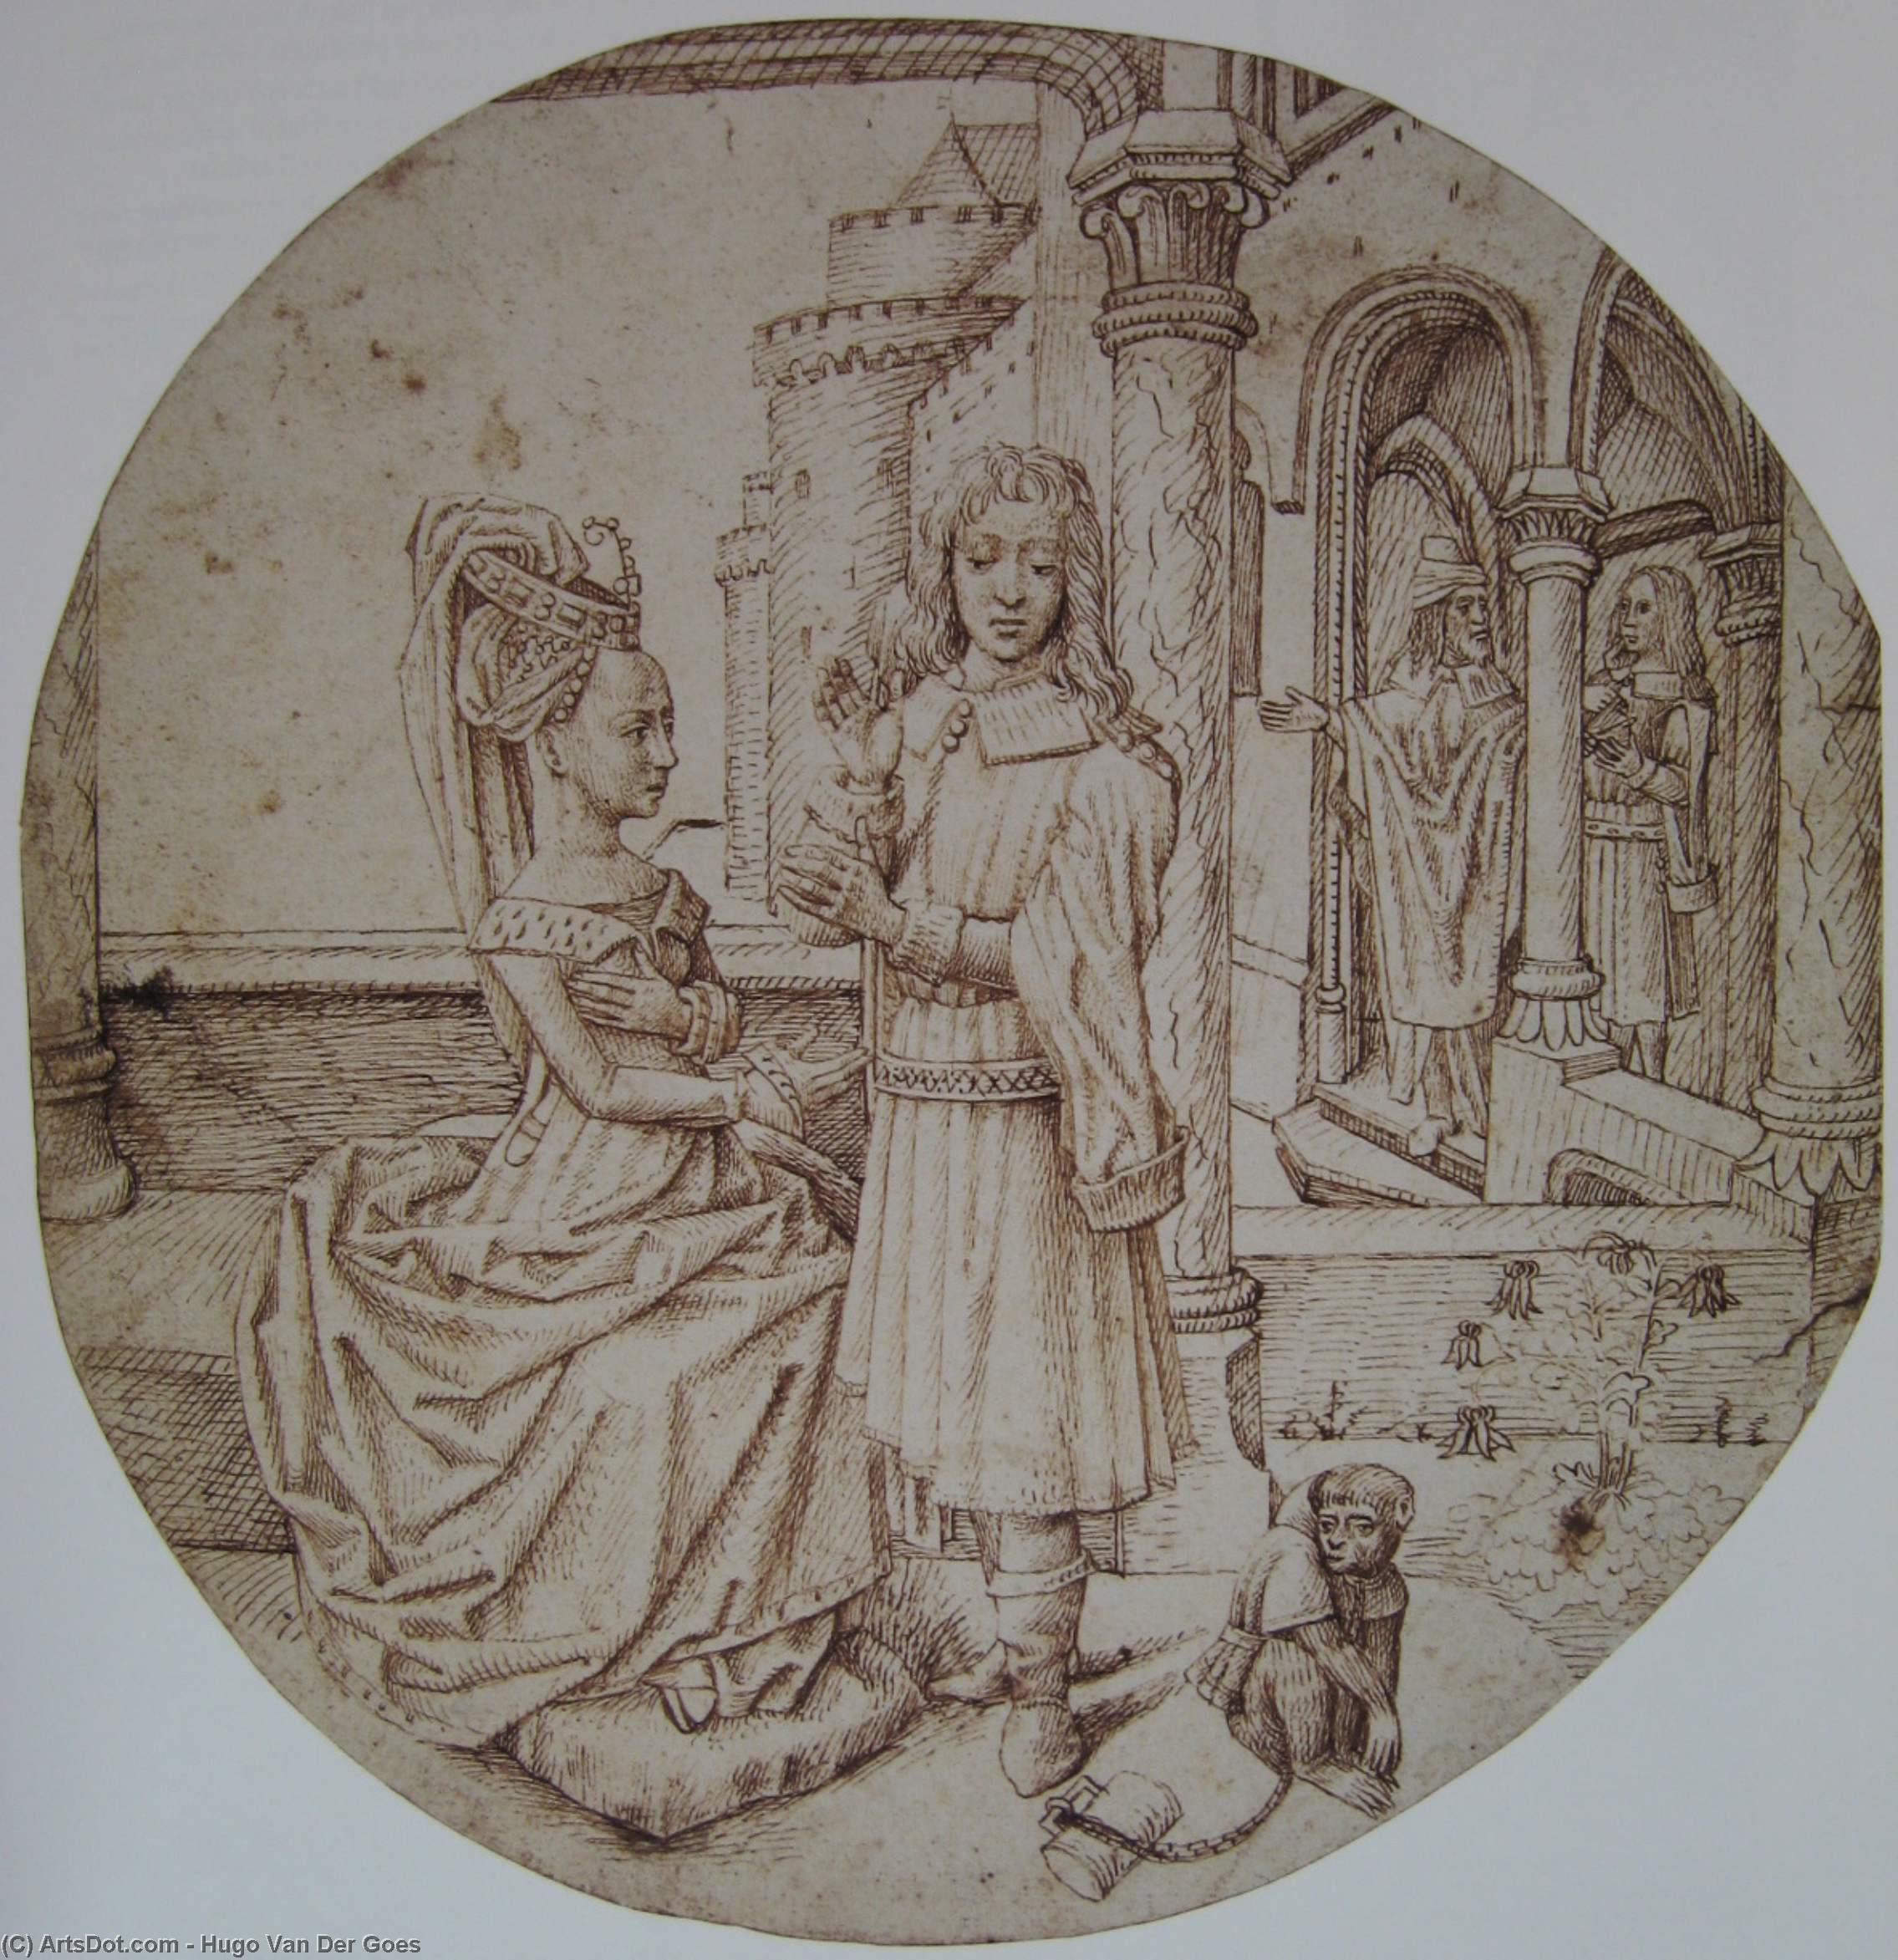 Wikioo.org - The Encyclopedia of Fine Arts - Painting, Artwork by Hugo Van Der Goes - Joseph and Asenath